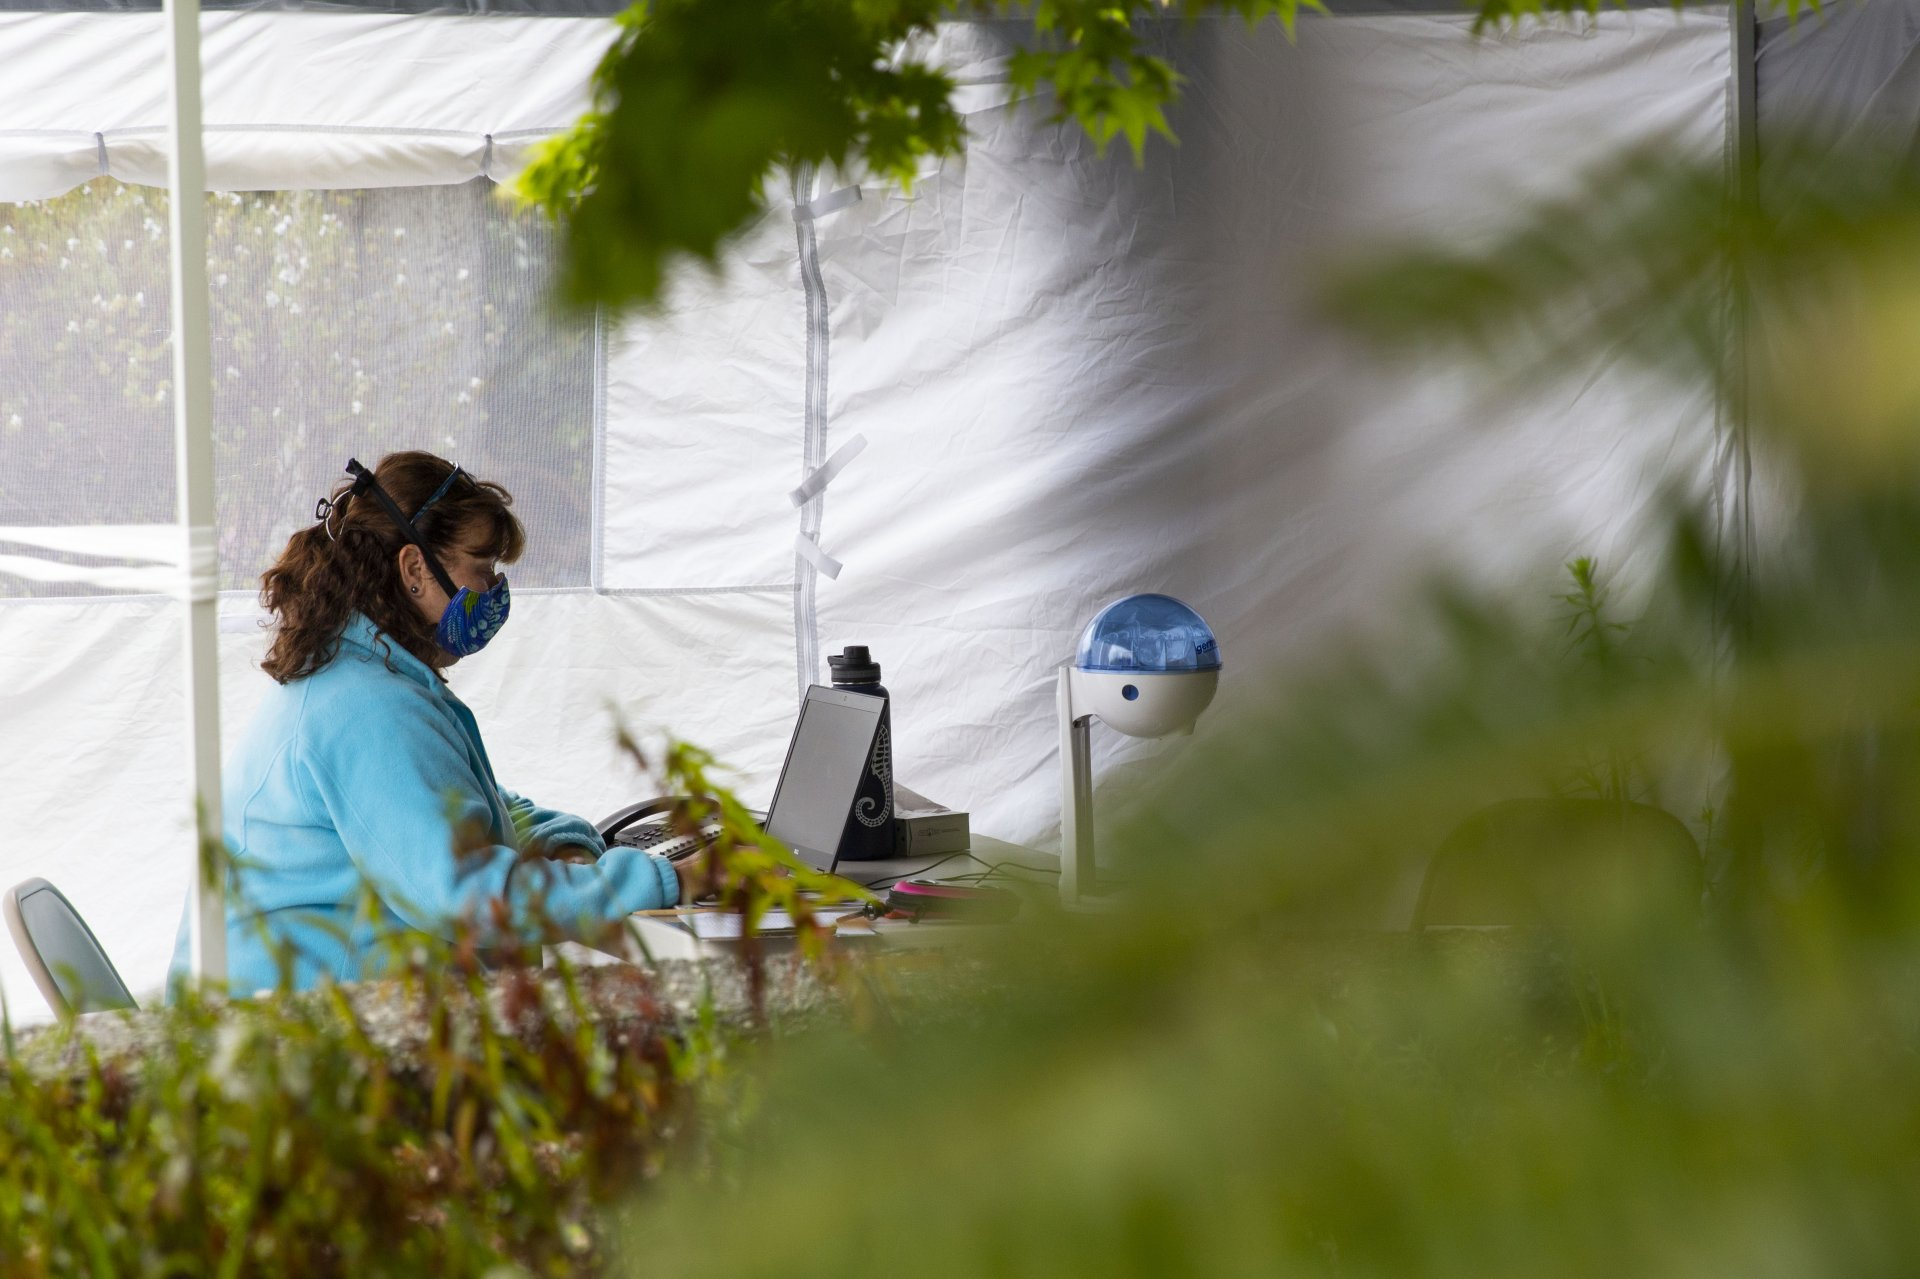 Chris Mis, a registered nurse who works part time at the Student Health Center works at her computer under a tent outside during the Covid-19 pandemic on April 17. | Photo by Thomas Lal